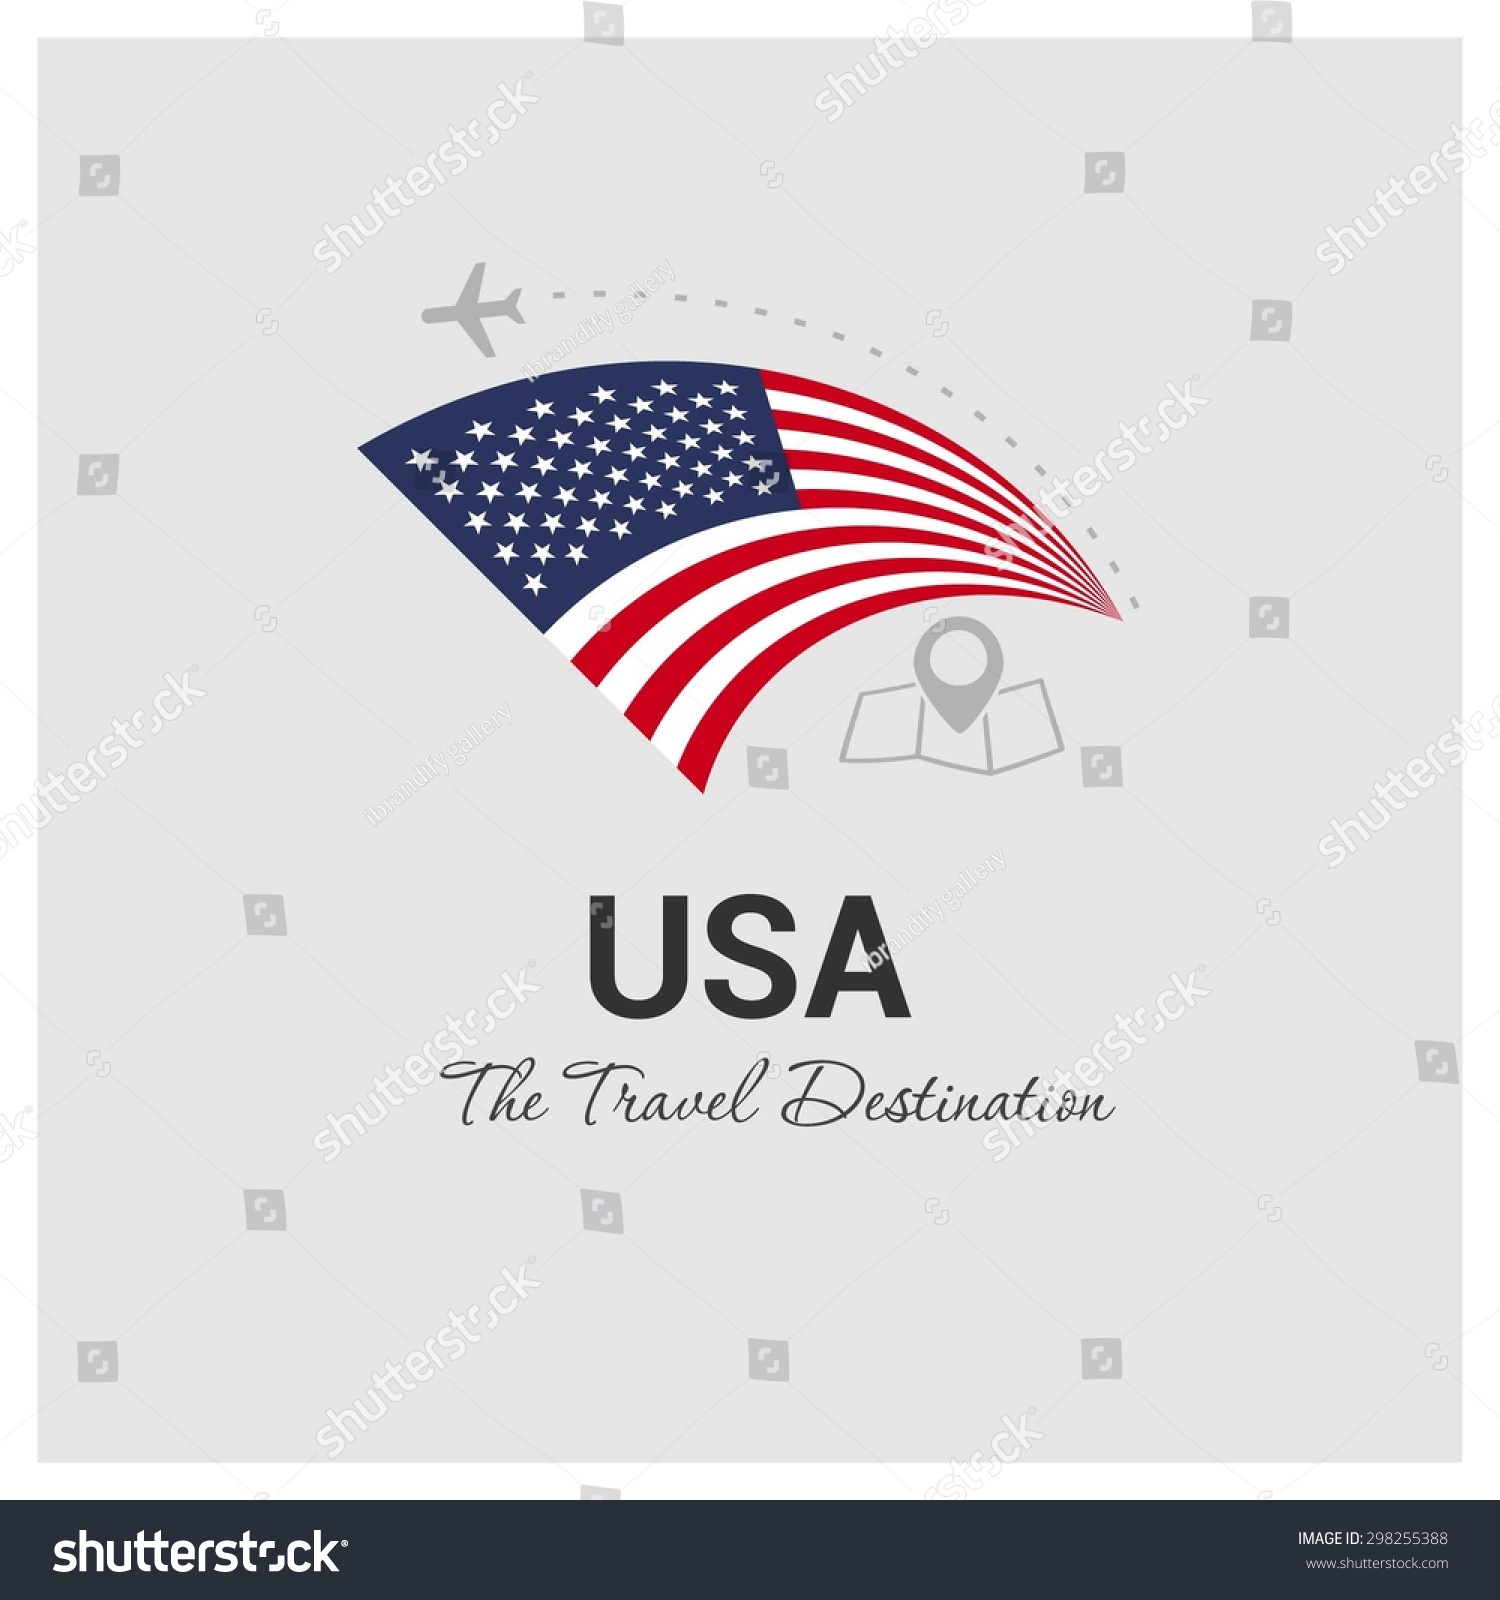 Usa the travel destination logo vector travel company for Design company usa